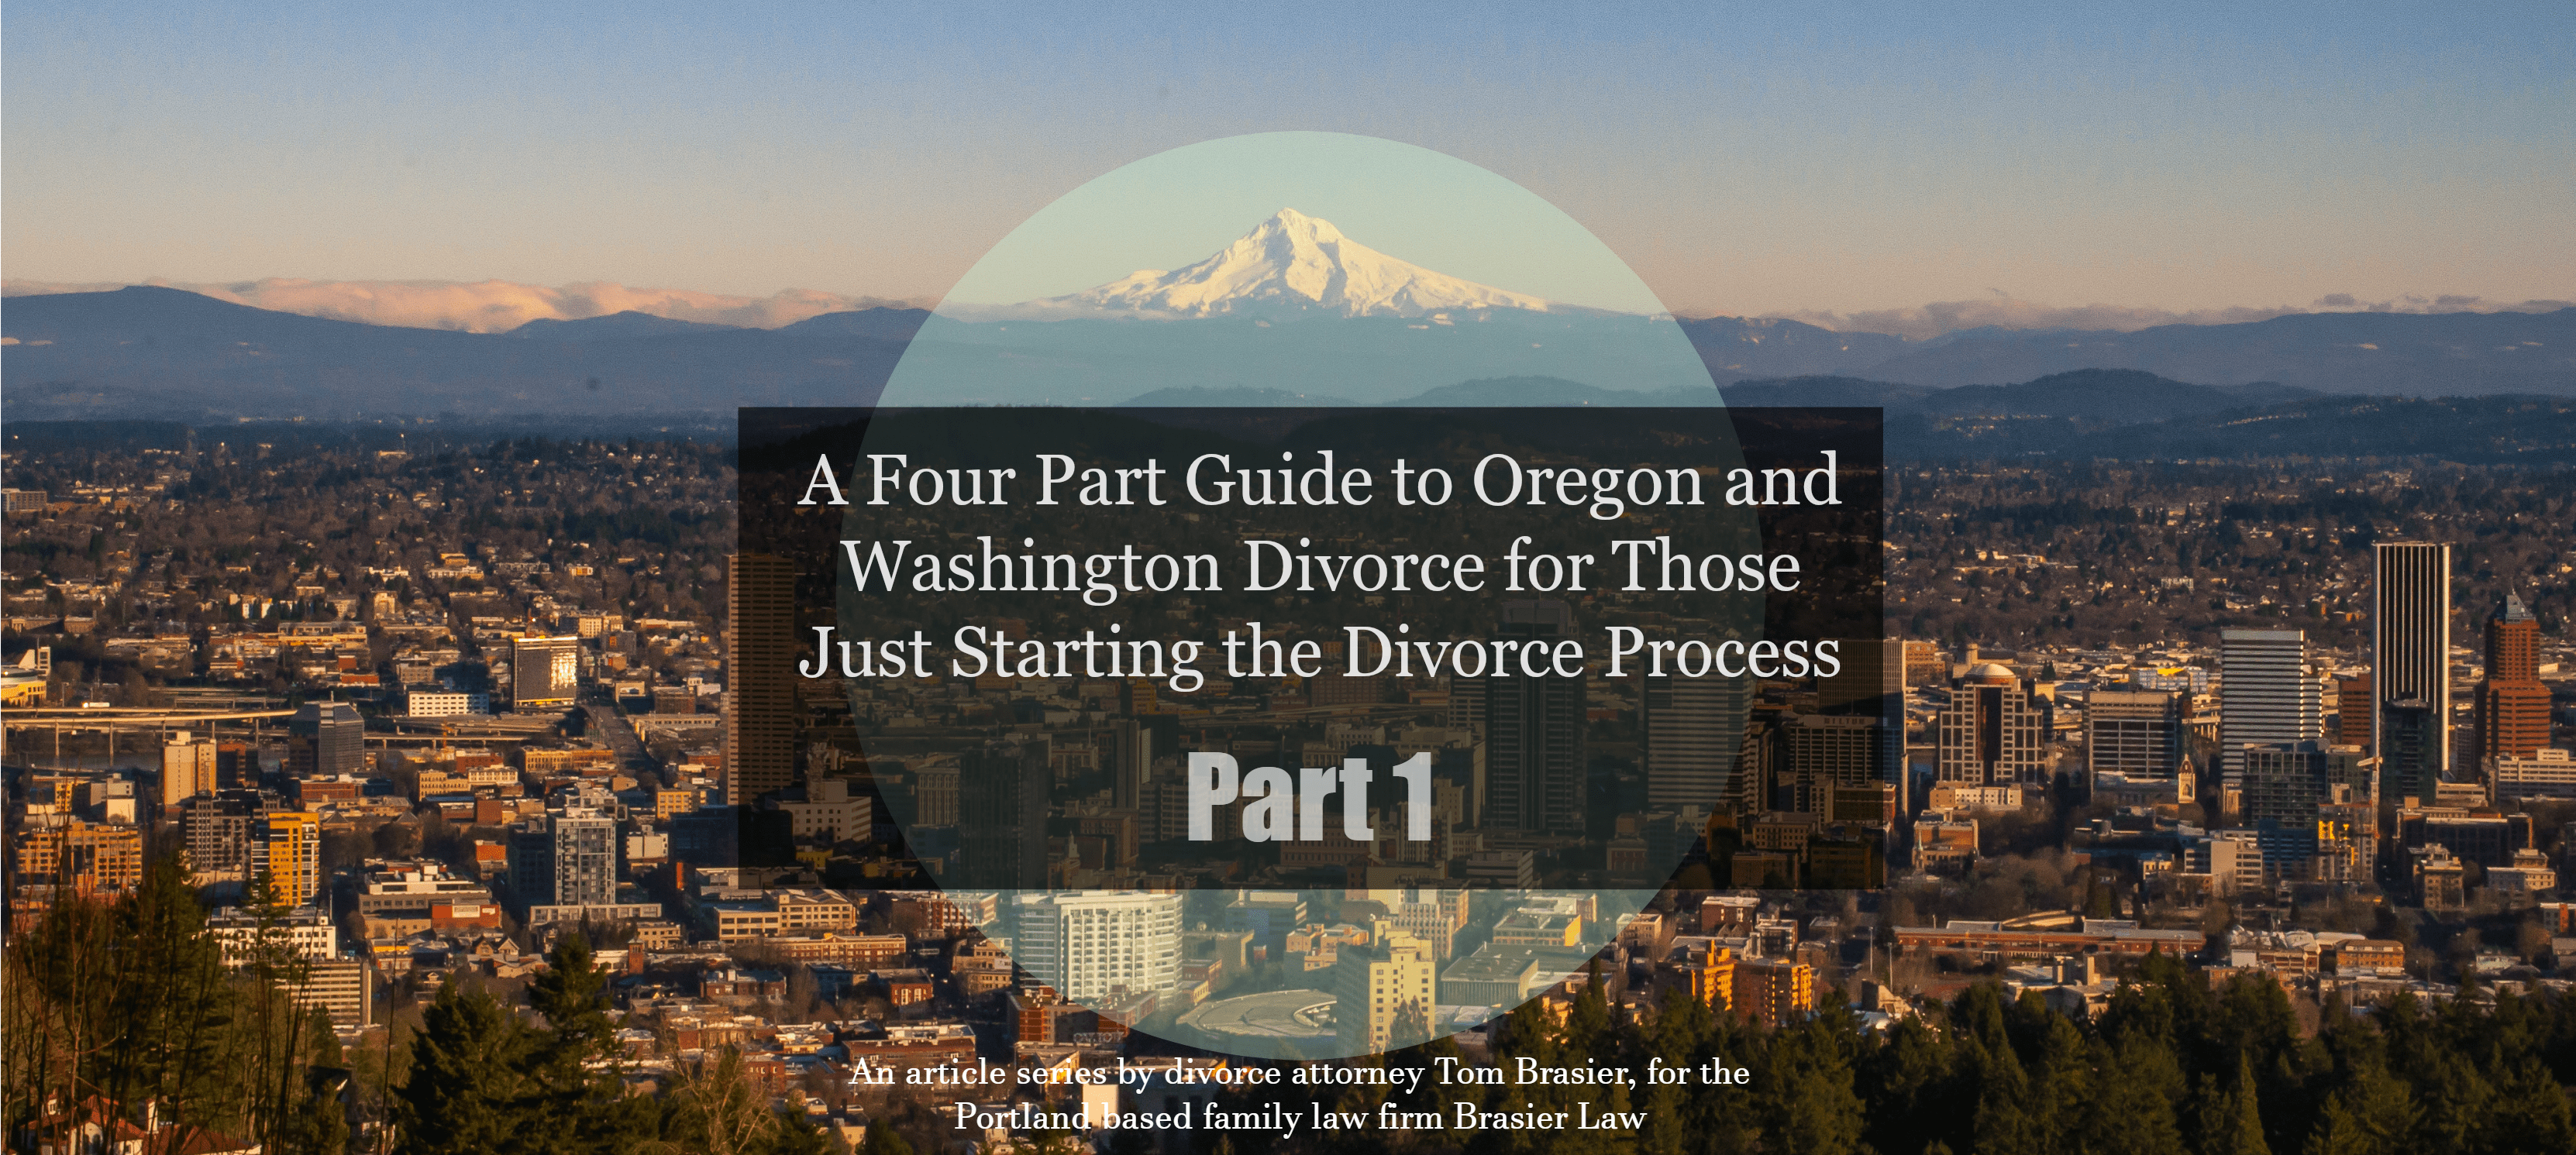 Washington and Oregon divorce guide, part 1